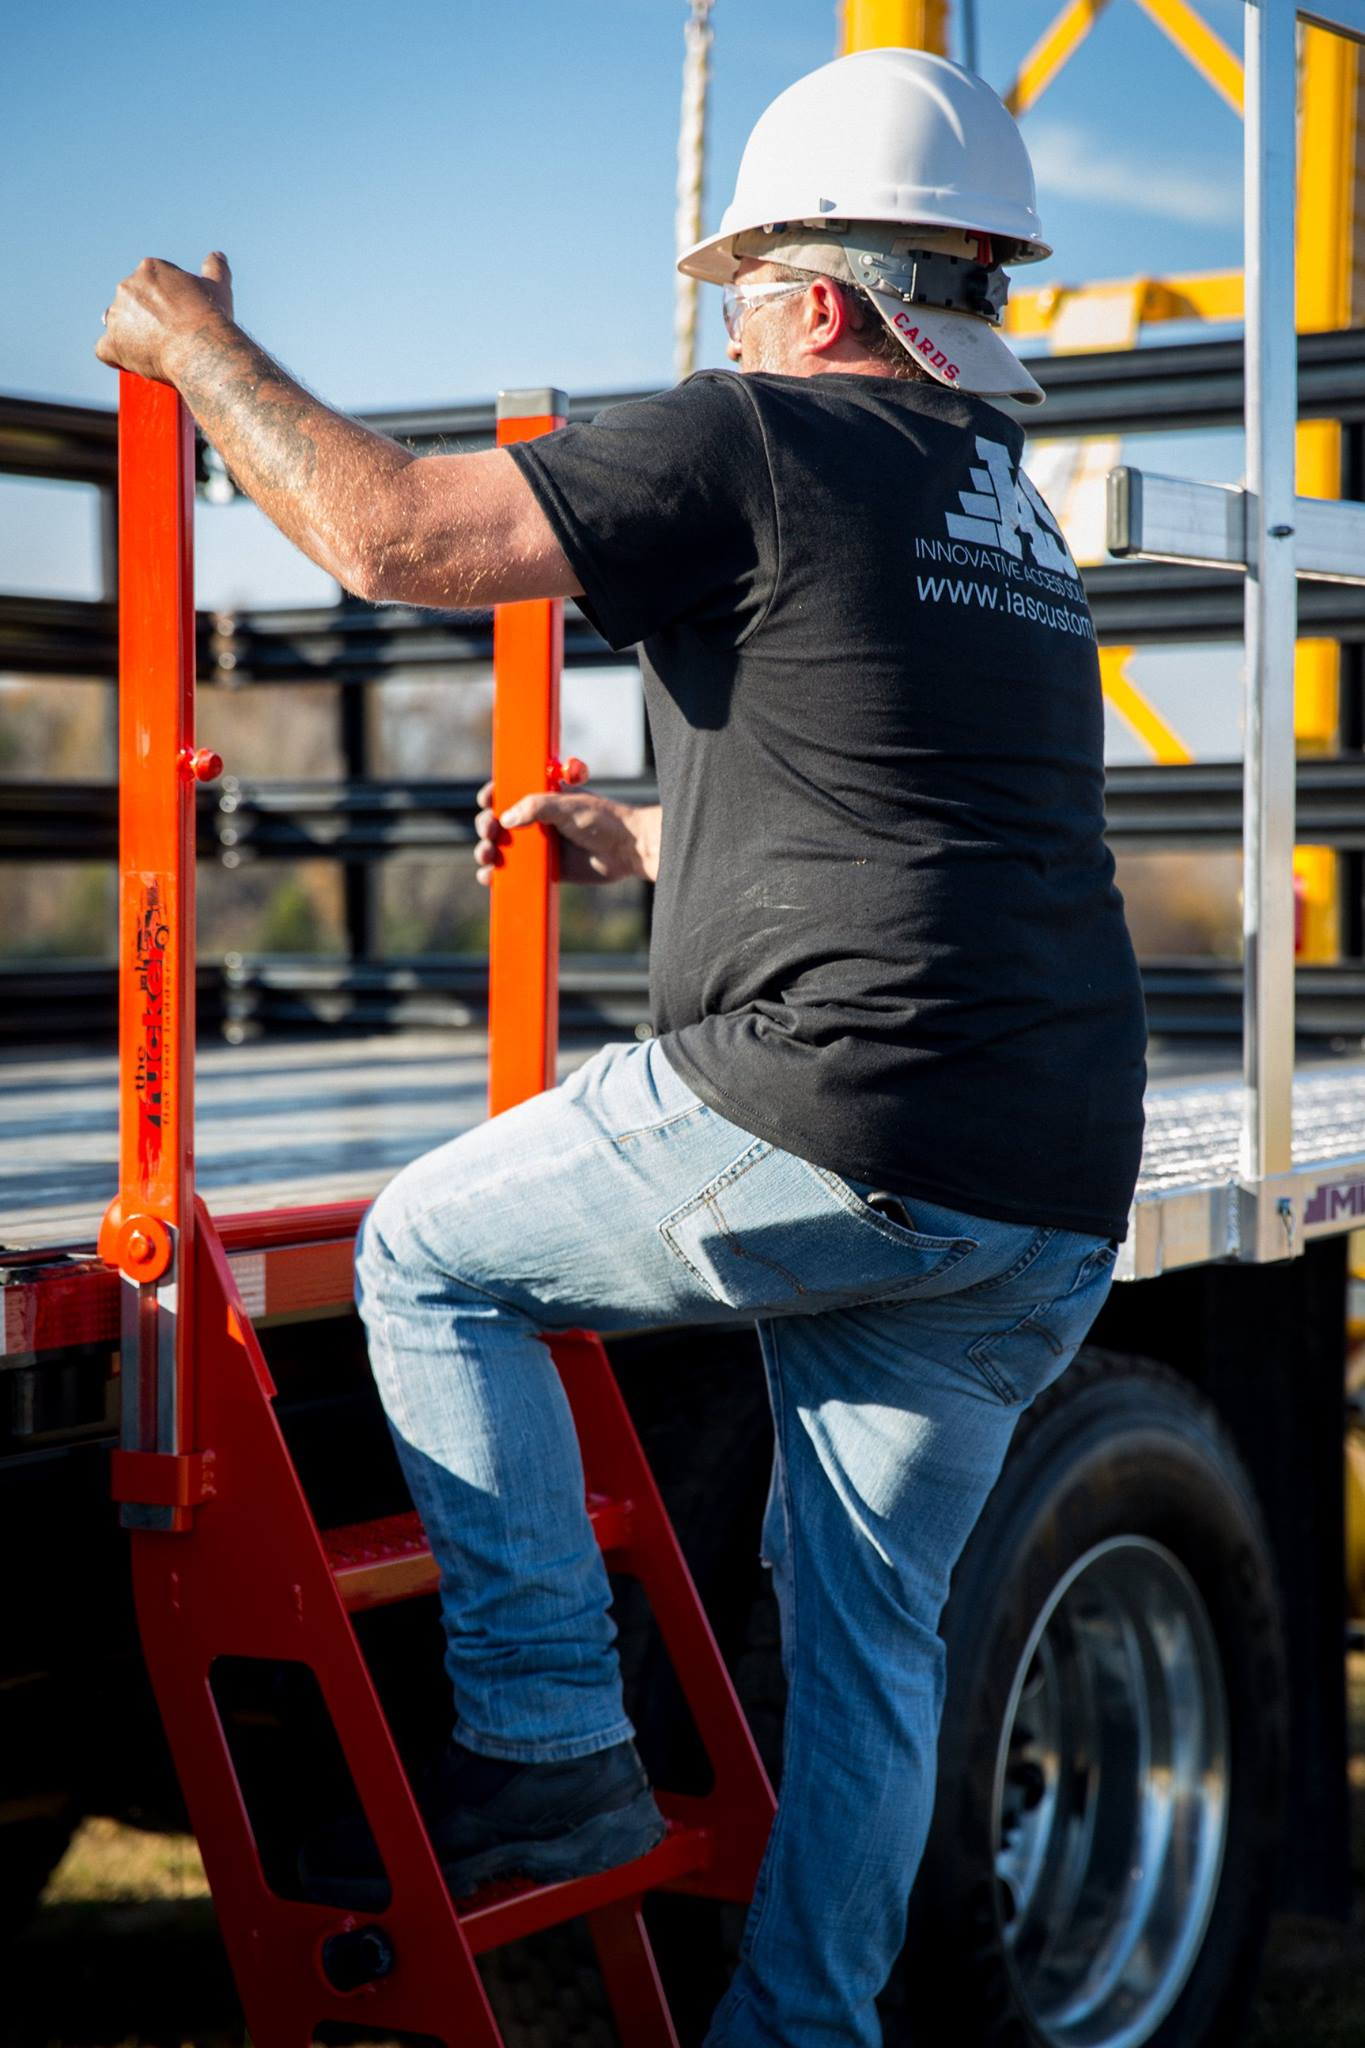 Trucker I Ladder Flatbed Trailer Fall Protection Safety